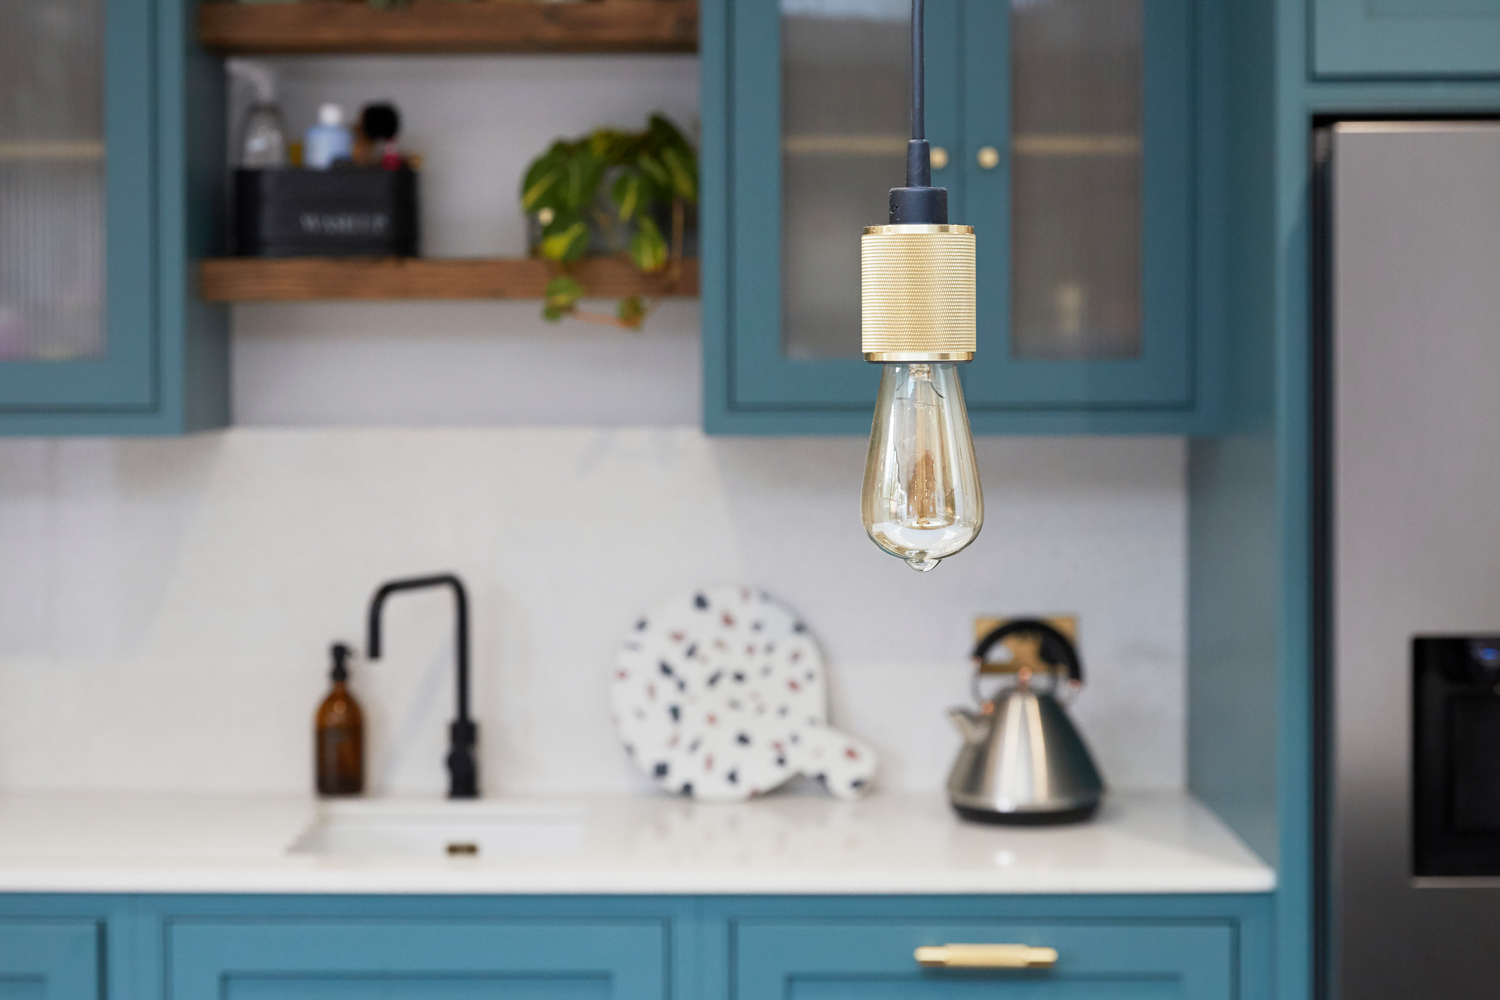 Buster and Punch heavy metal pendant light bulb above bespoke kitchen